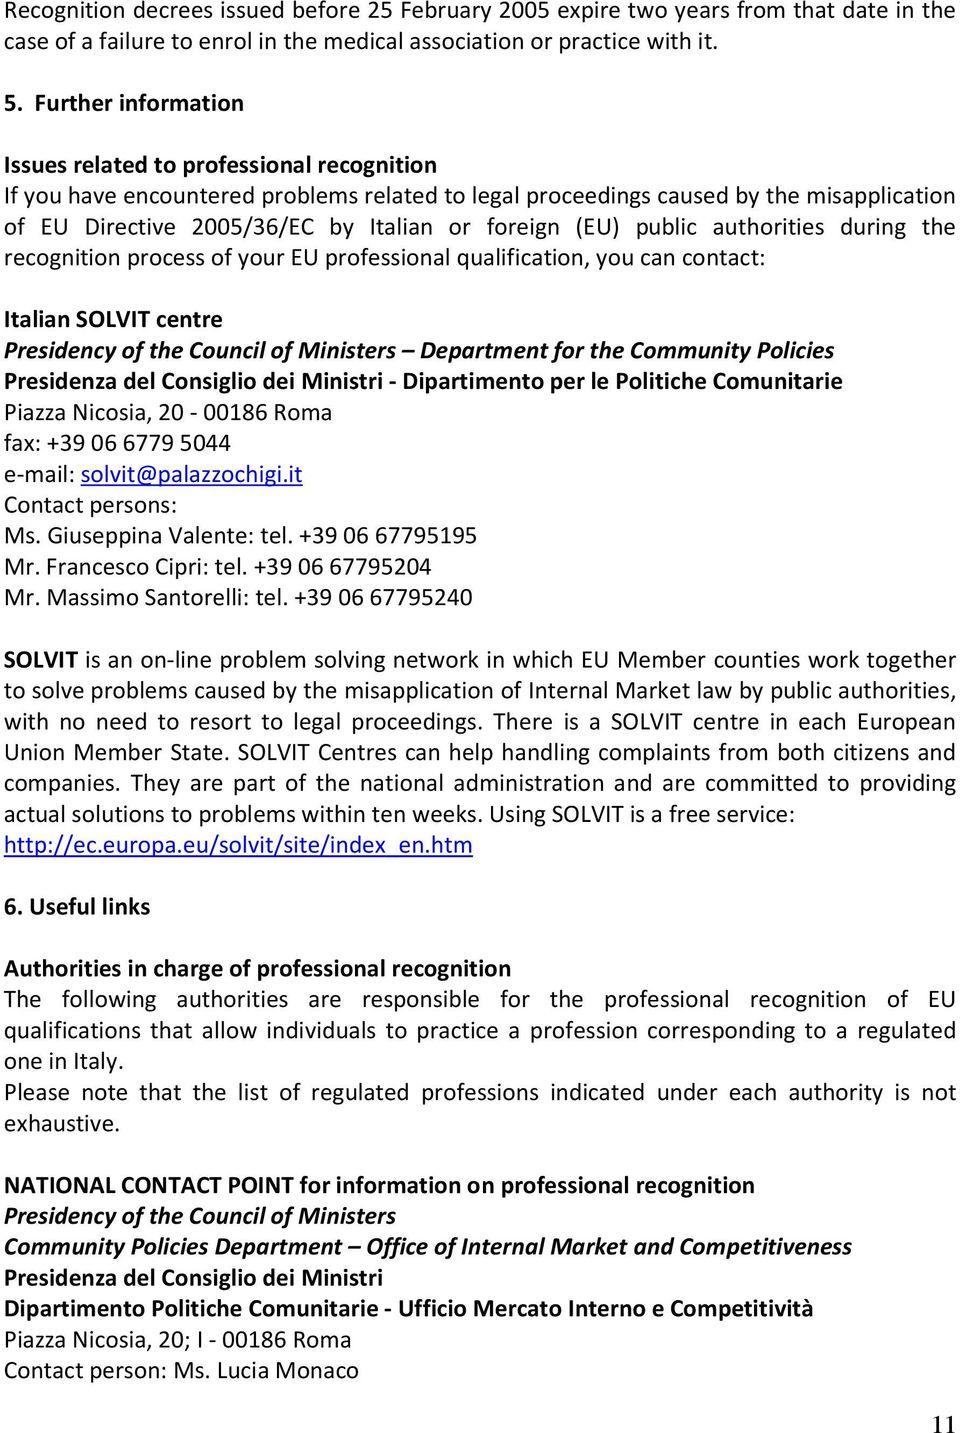 foreign (EU) public authorities during the recognition process of your EU professional qualification, you can contact: Italian SOLVIT centre Presidency of the Council of Ministers Department for the